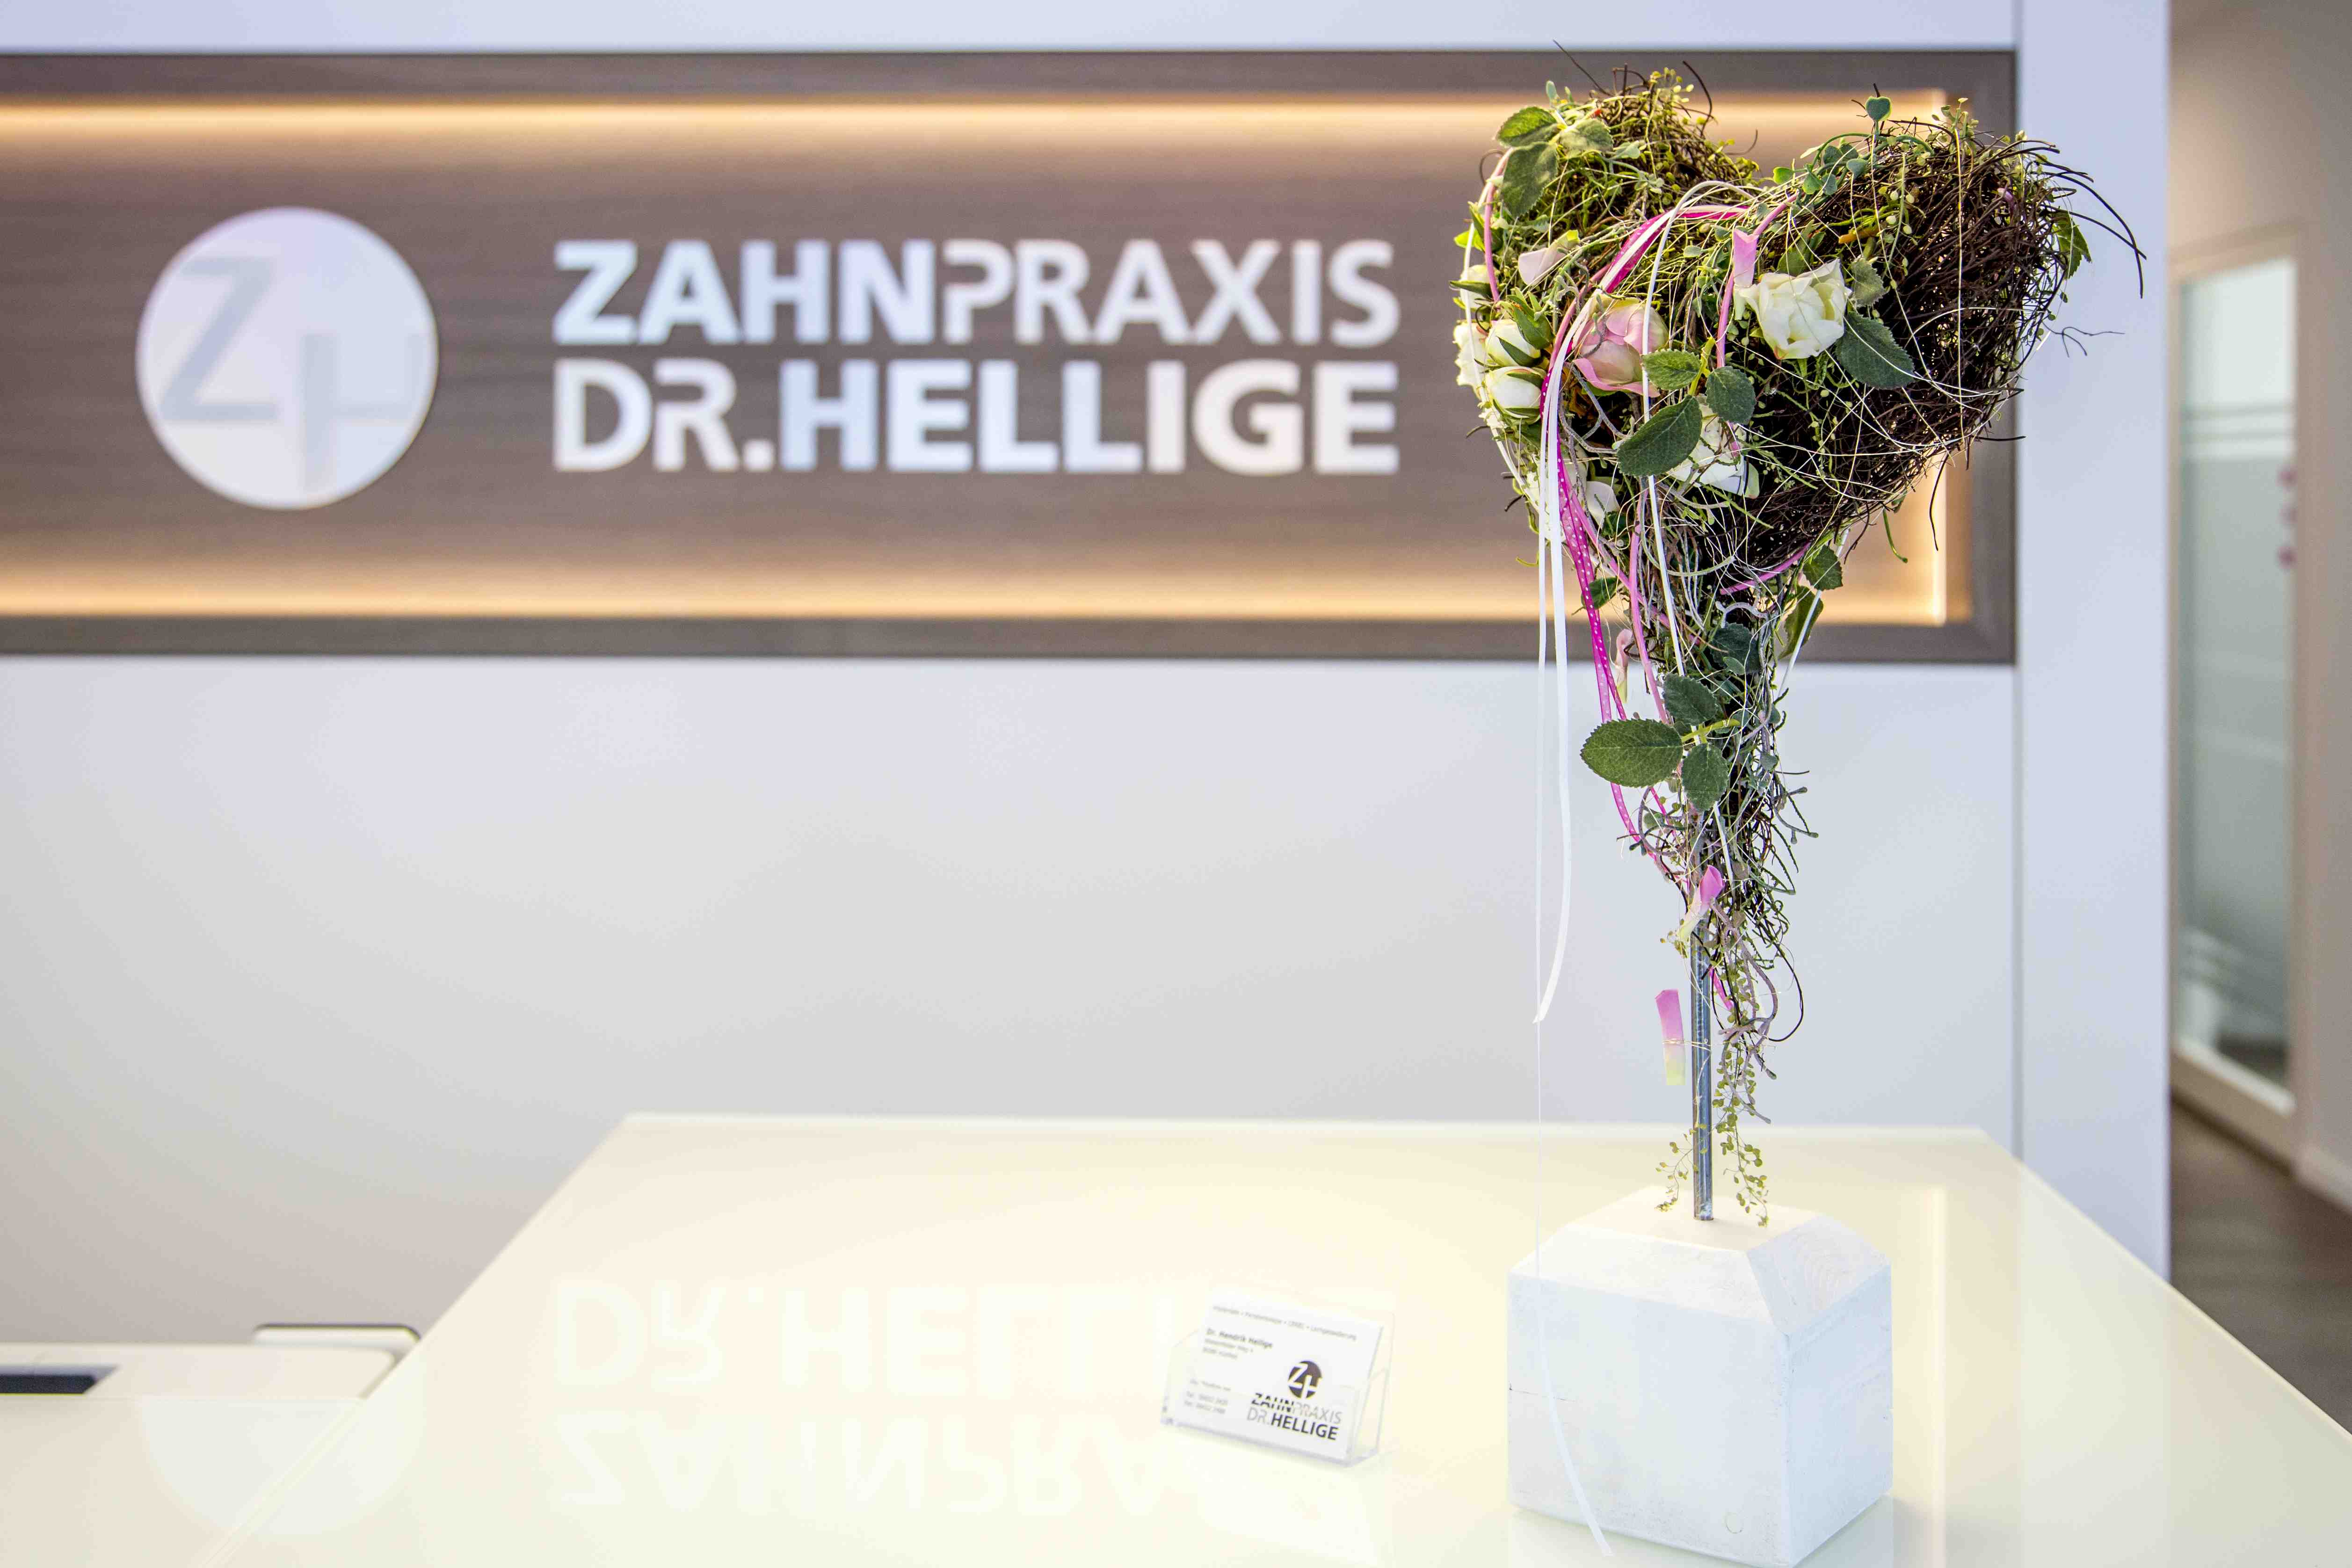 Unsere Zahnpraxis Dr. Hellige